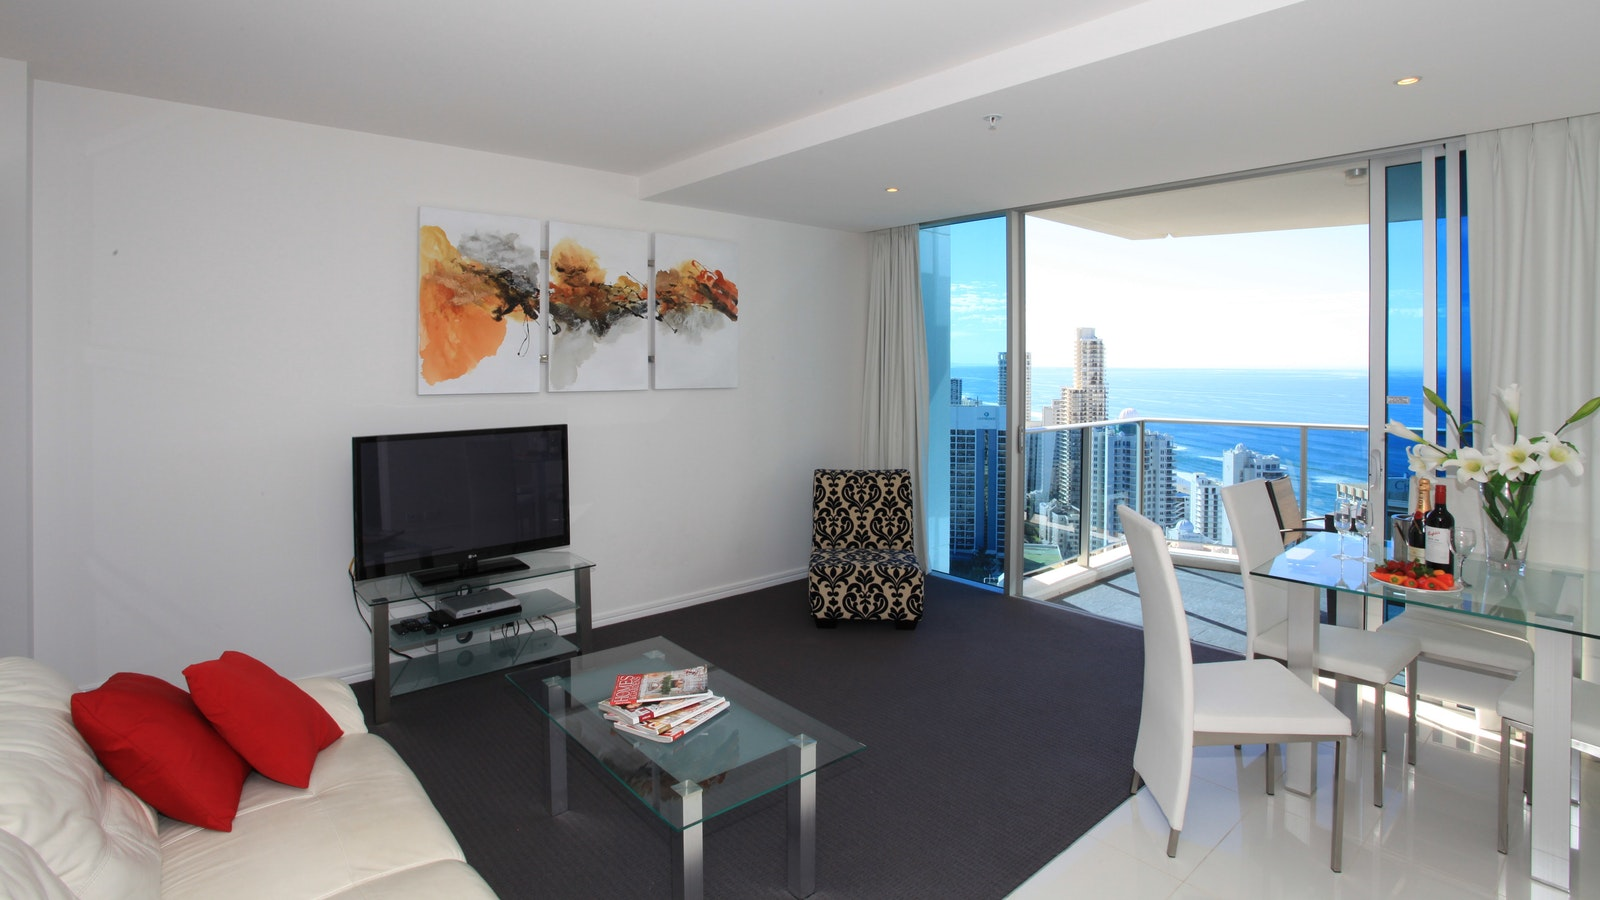 Holiday Holiday - H Residences above Hilton Surfers Paradise living area 2 bedrooms ocean view